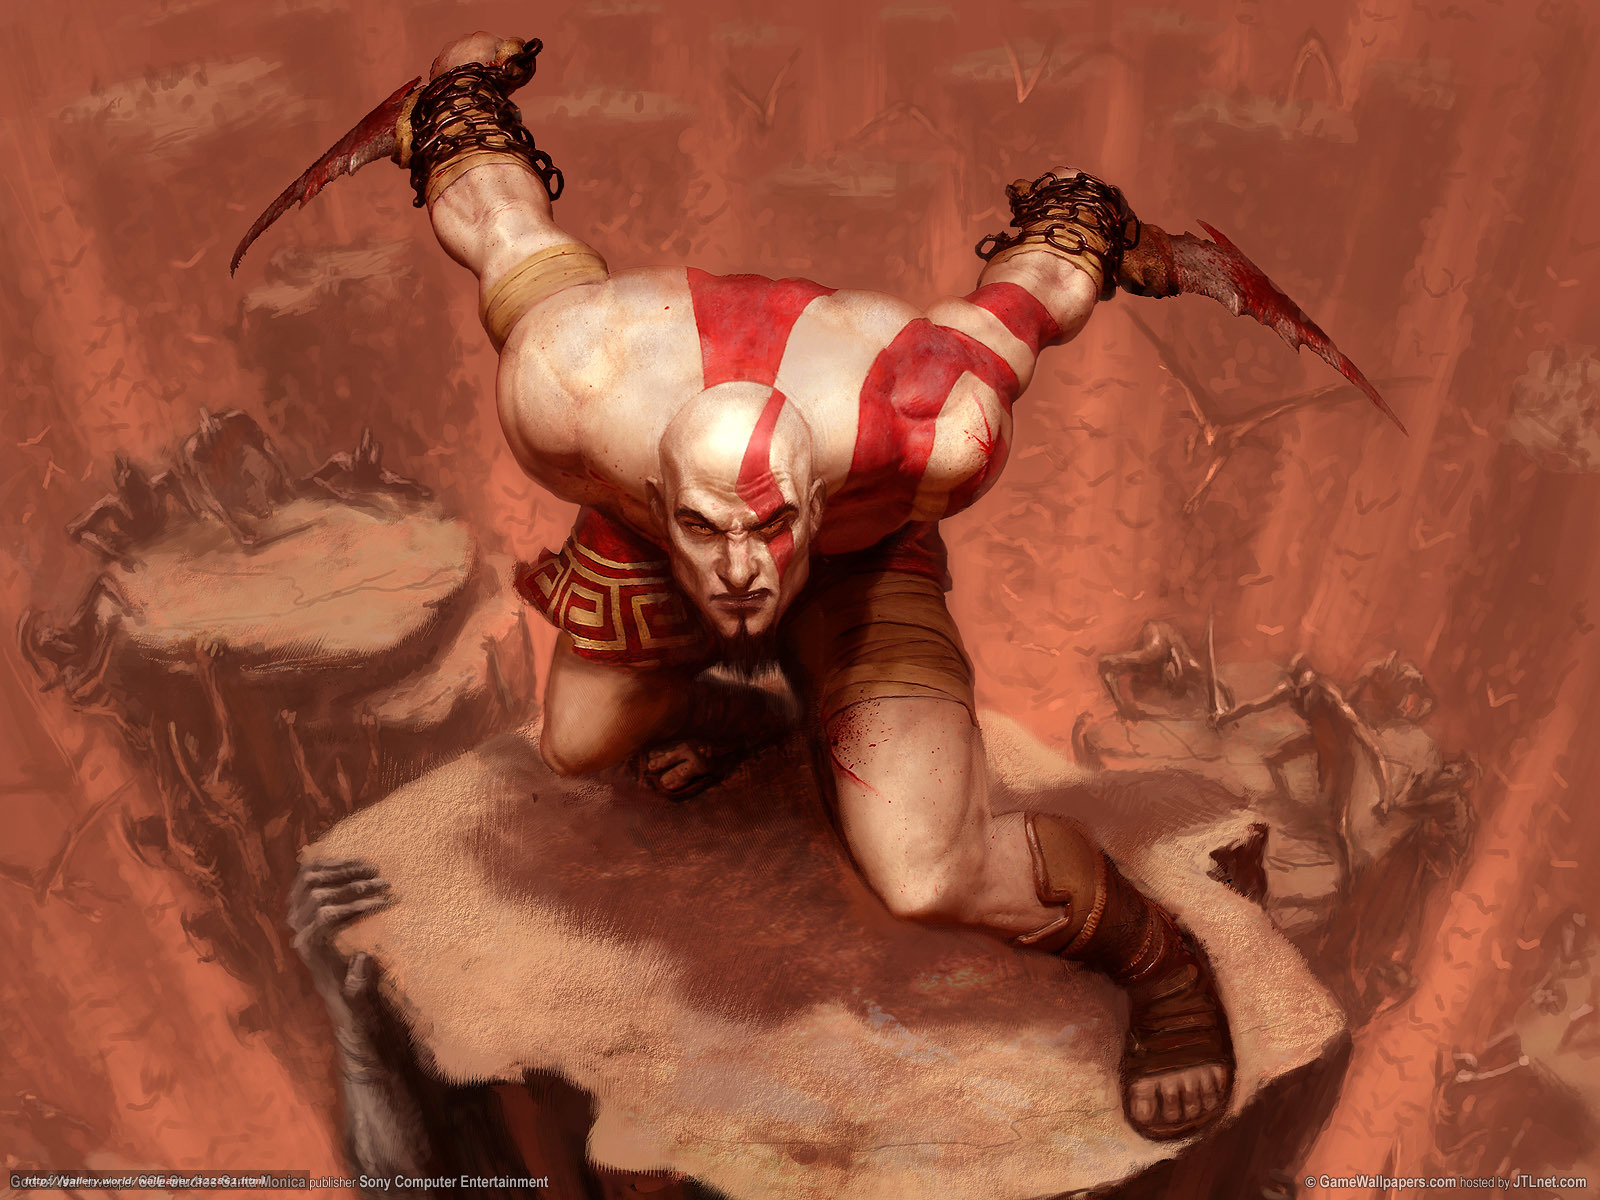 Download wallpaper game, kratos, God of War free desktop wallpaper